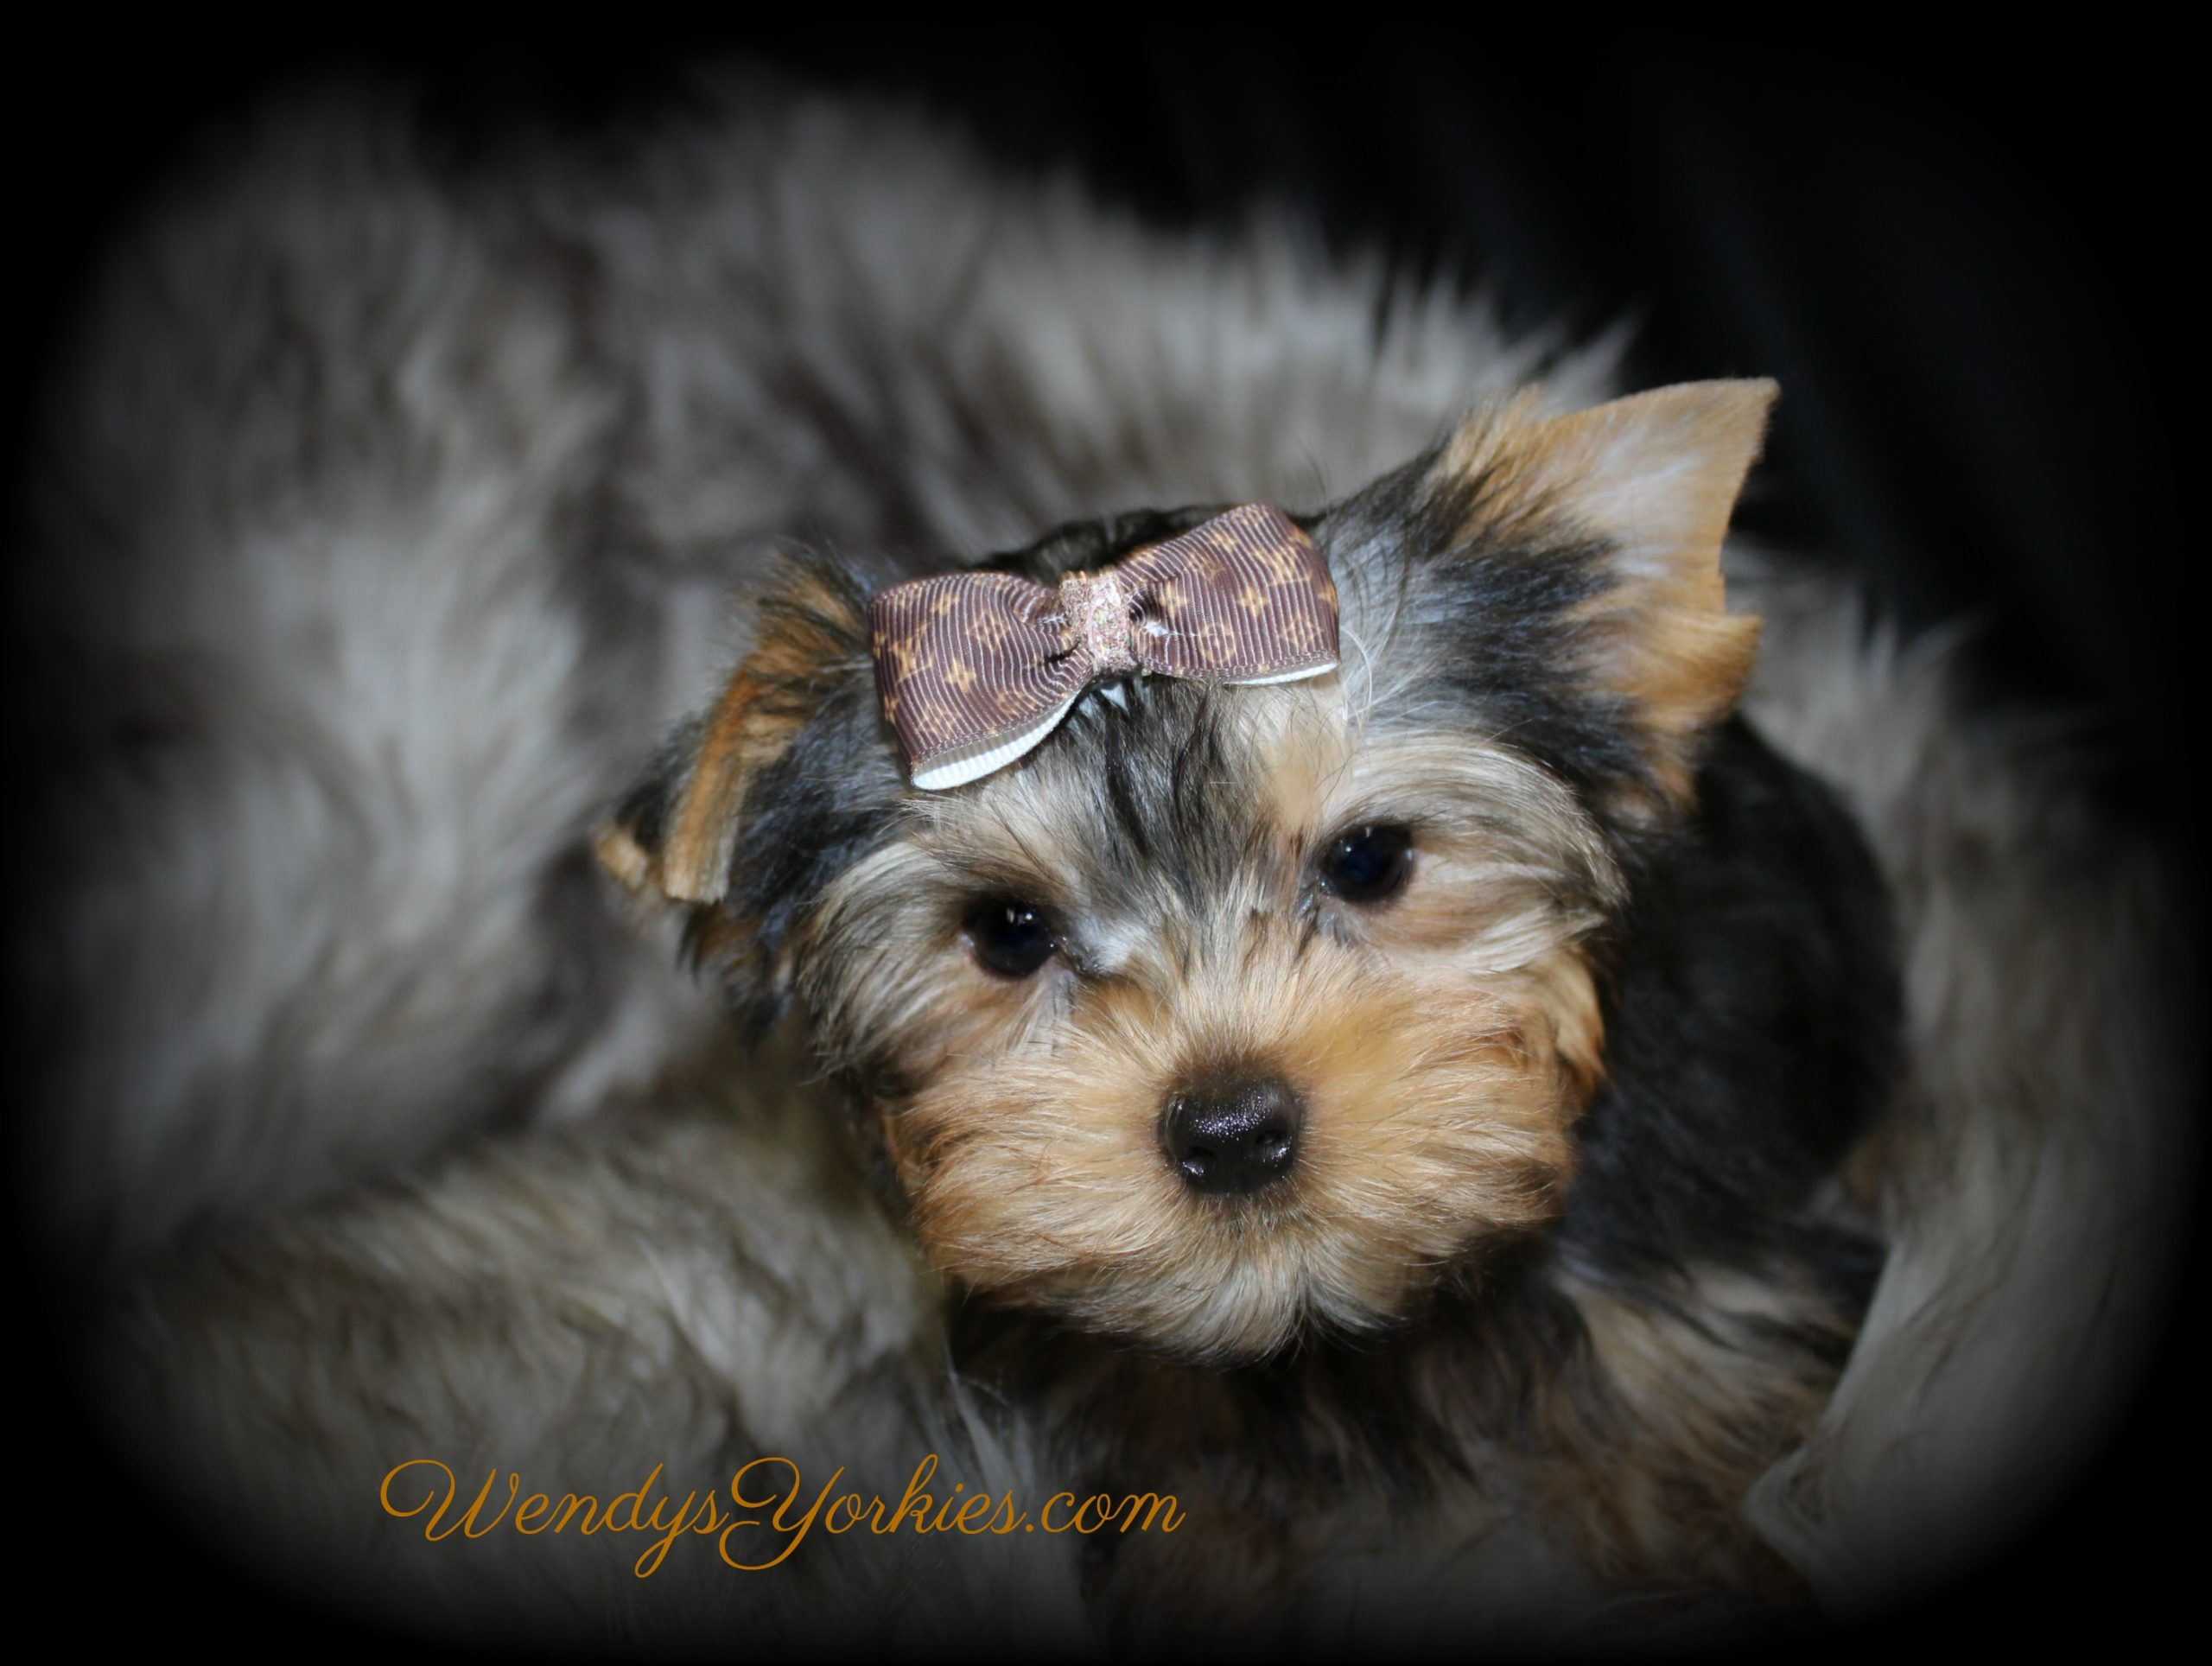 Yorkie puppies for sale in Texas, Ritz, WendysYorkies.com